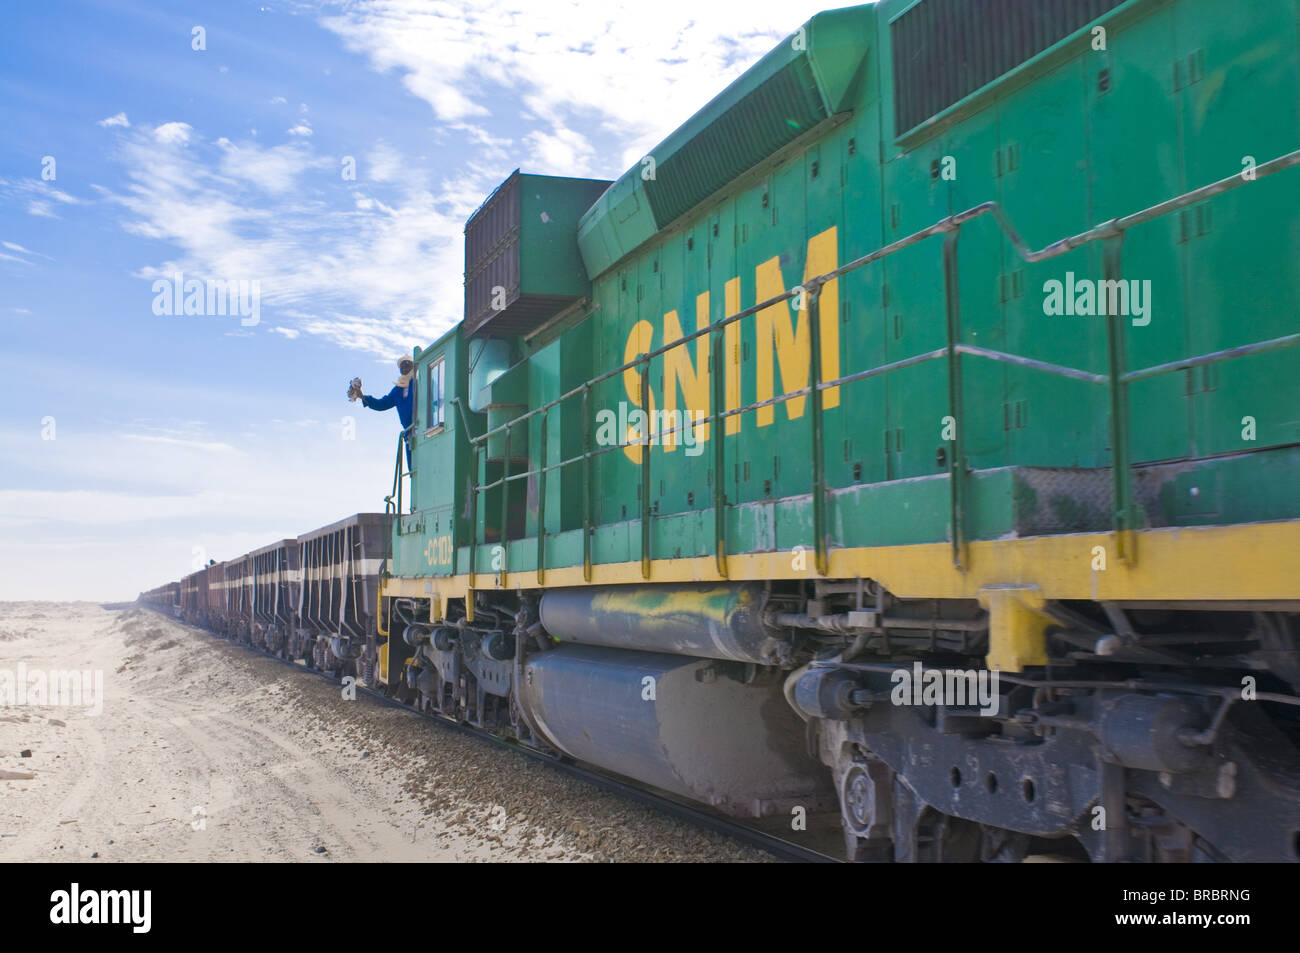 The longest iron ore train in the world between Zouerate and Nouadhibou, Mauritania - Stock Image